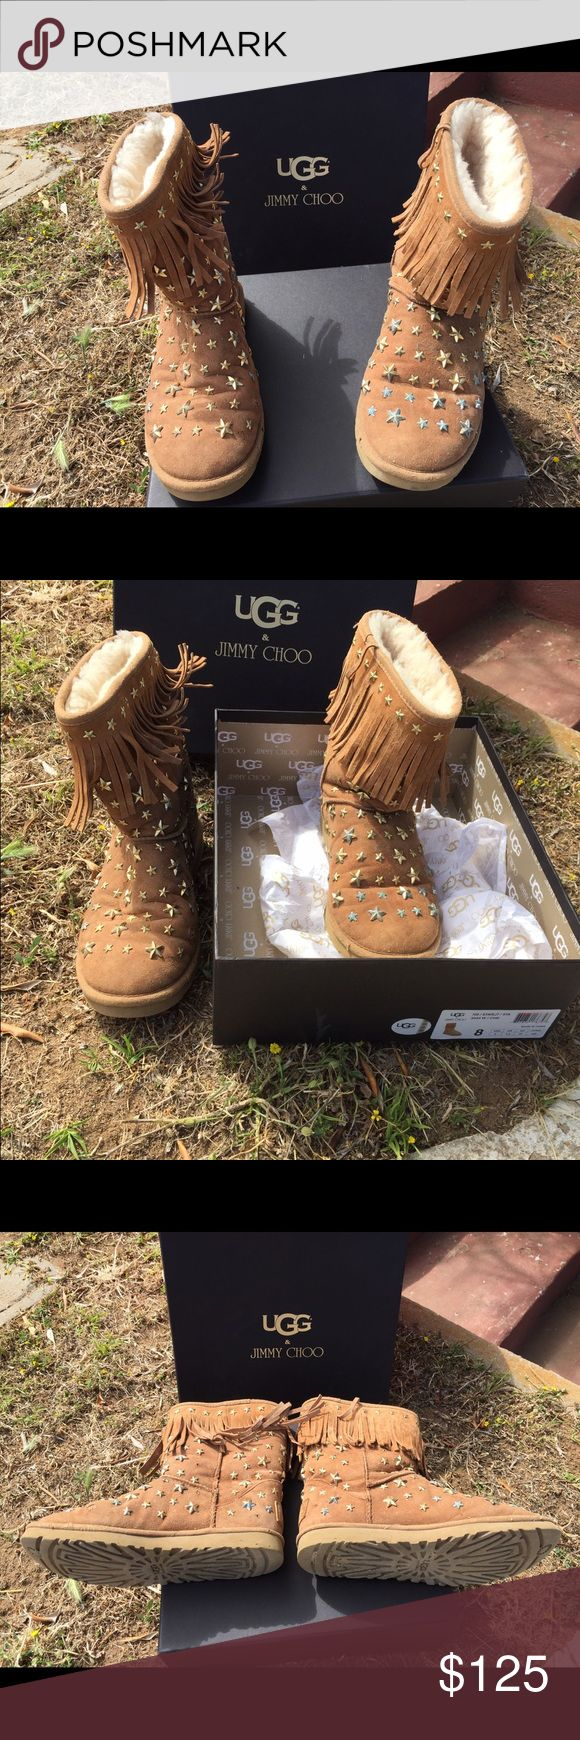 Jimmy Choo Uggs UGG and Jimmy Choo combined to make these amazing star studded boots. Original retail around $600. These are pre owned boots size 8. Jimmy Choo Shoes Heeled Boots